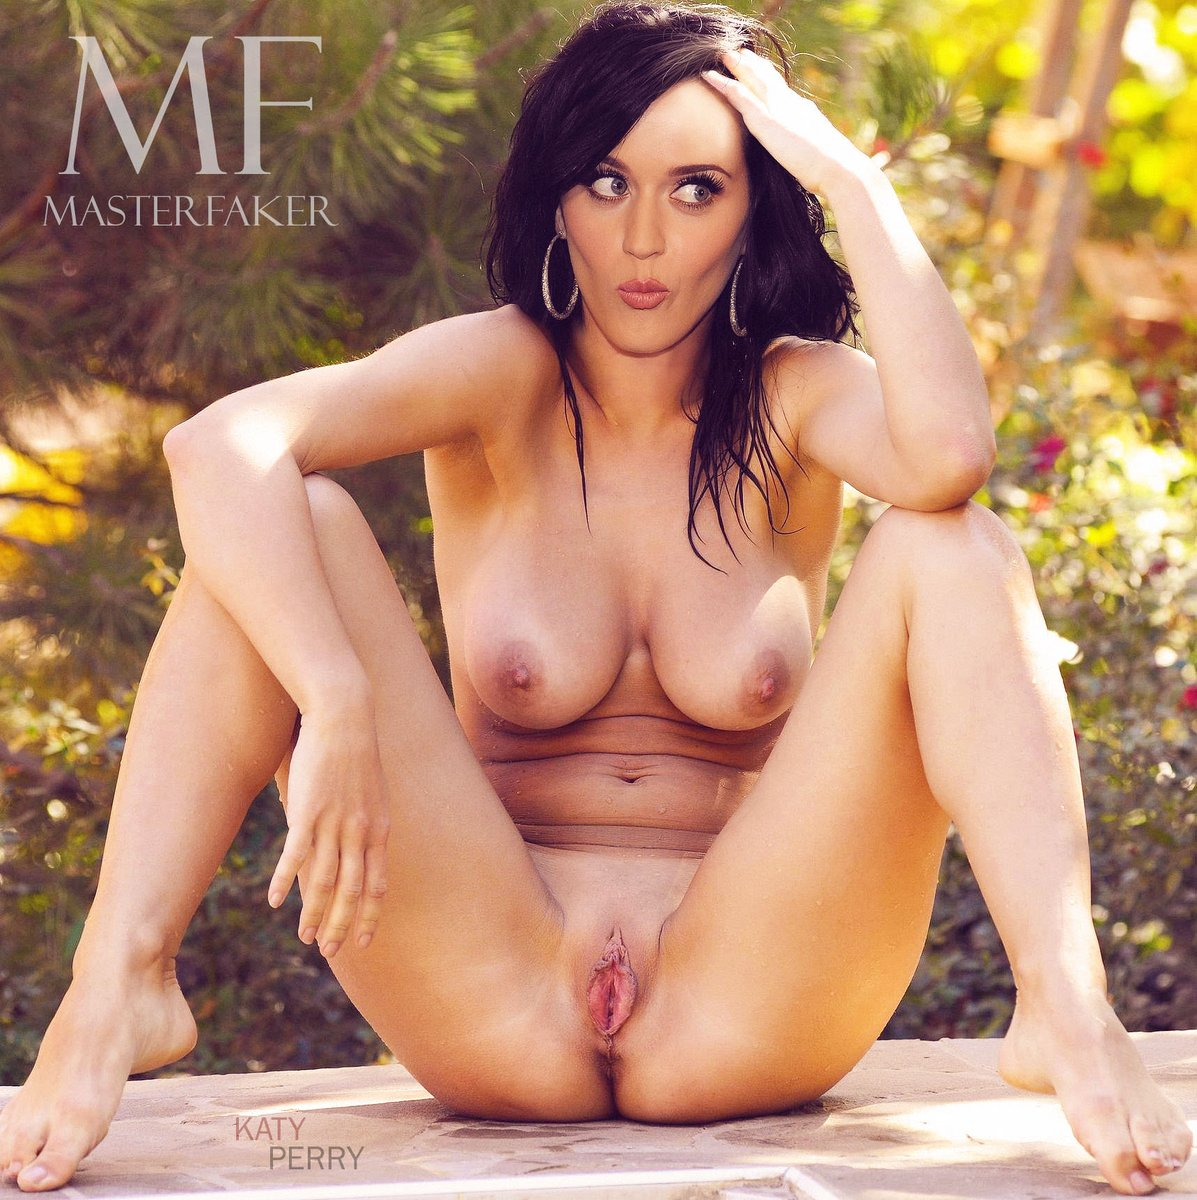 Katy perry some offense intended